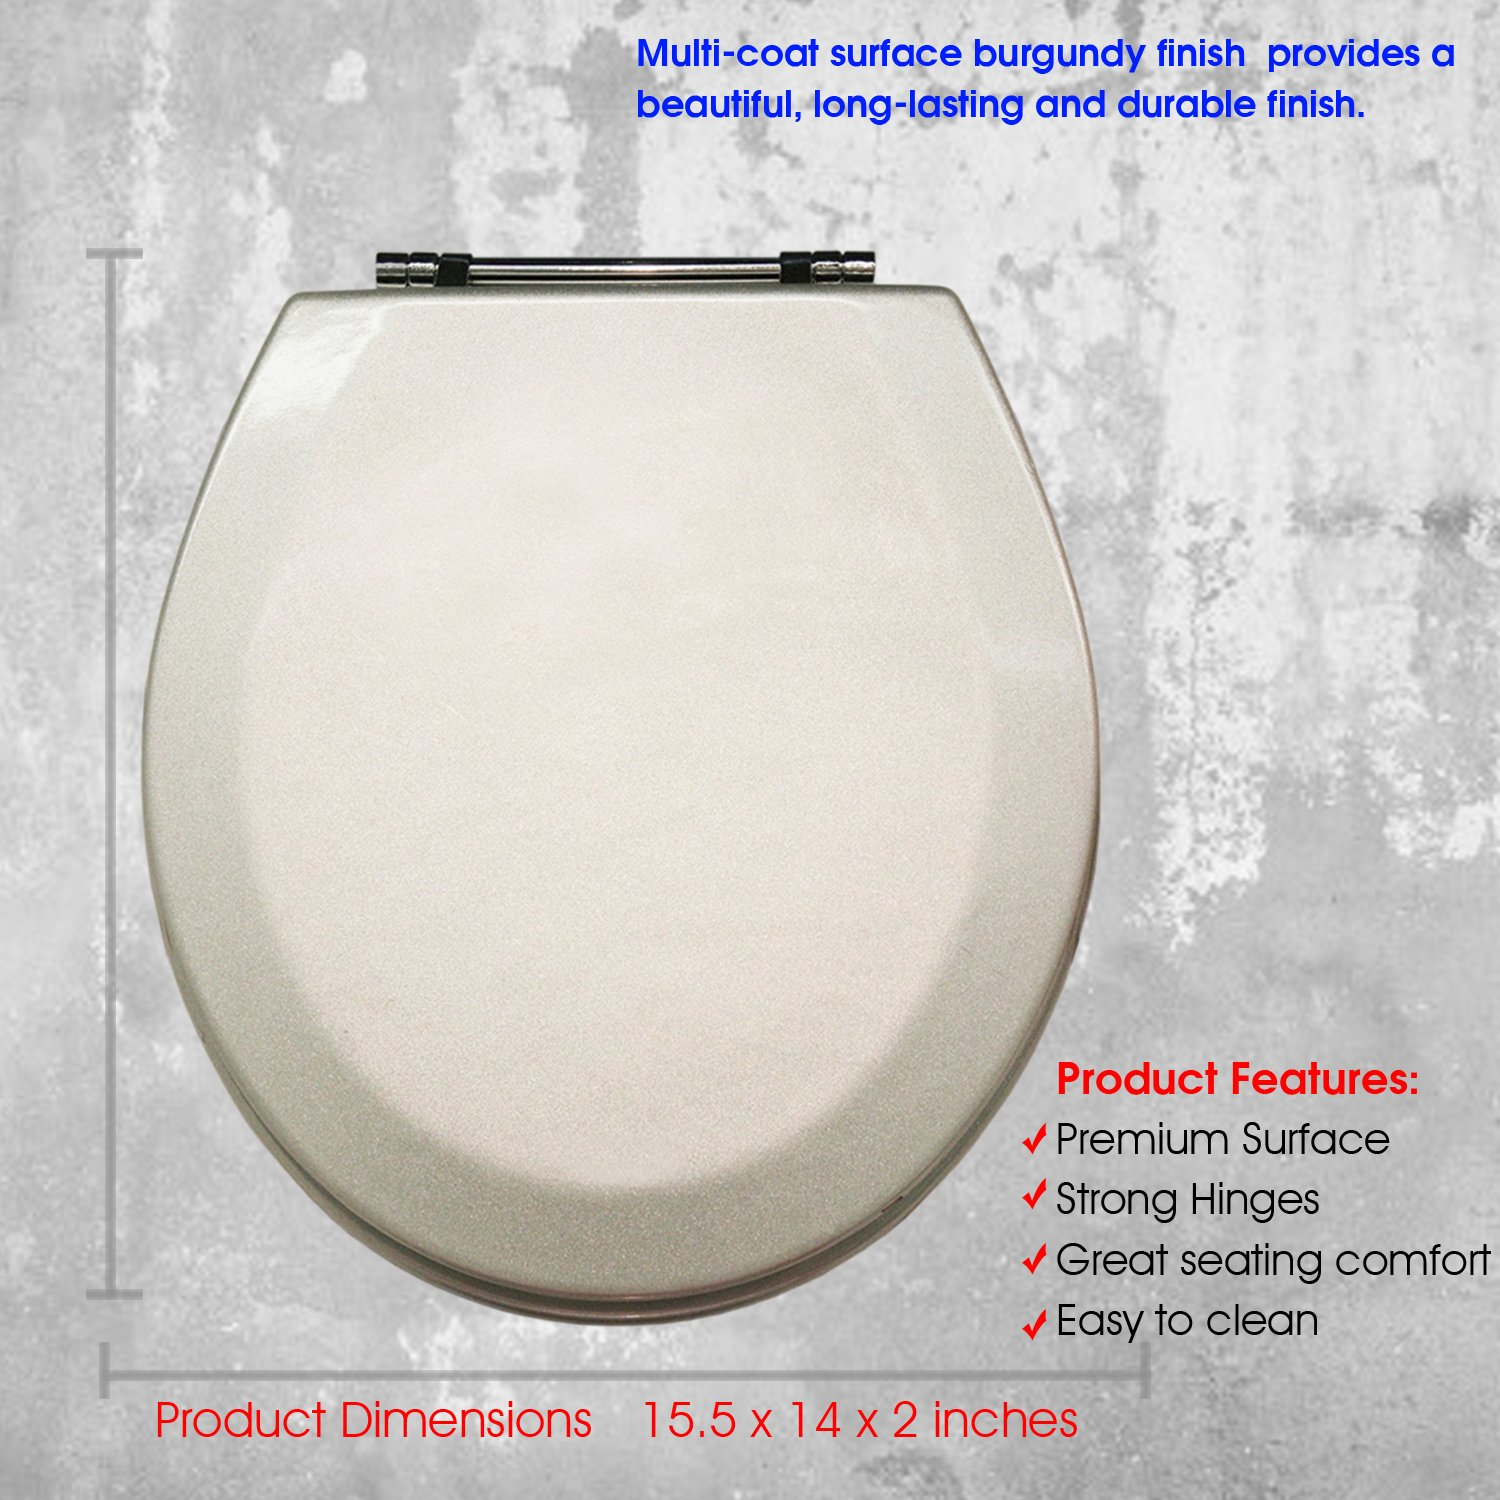 Water and Stain-resistant Finish with Chrome Hinges MDF-302 Silver American Trading House Inc Trimmer Premium Molded Wood Toilet Seats With Multi-Coat Surface Finish